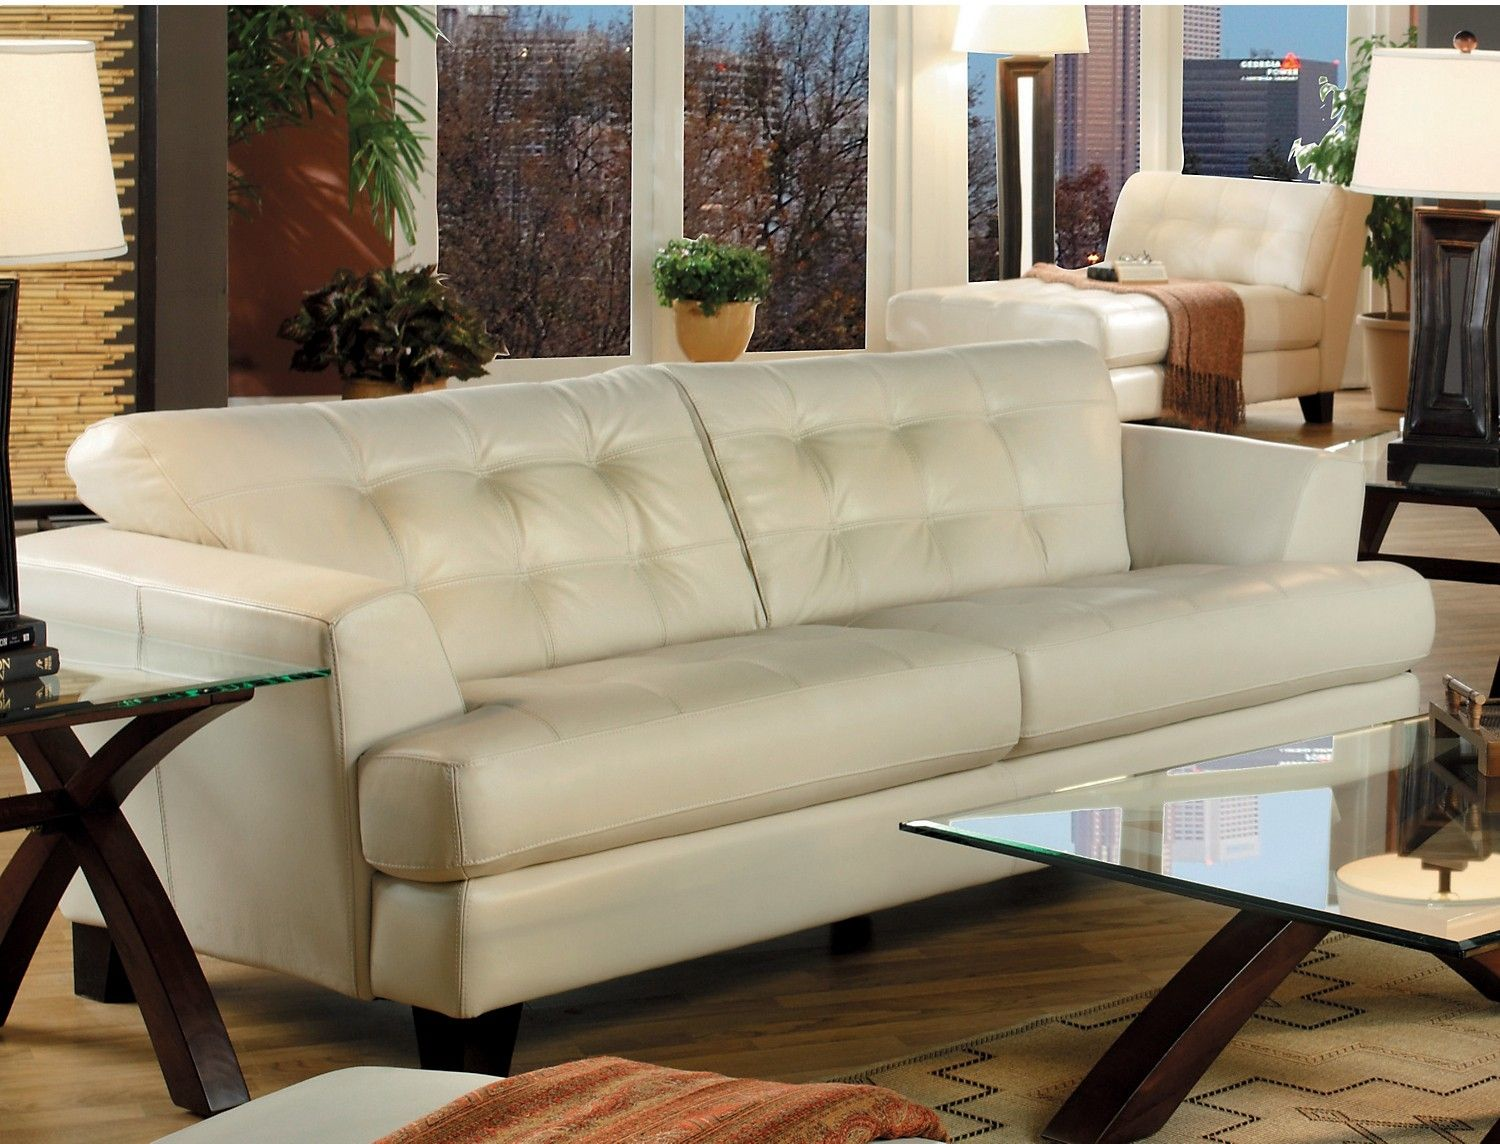 Perfect Avenue Genuine Leather Sofa   Ivory | The Brick